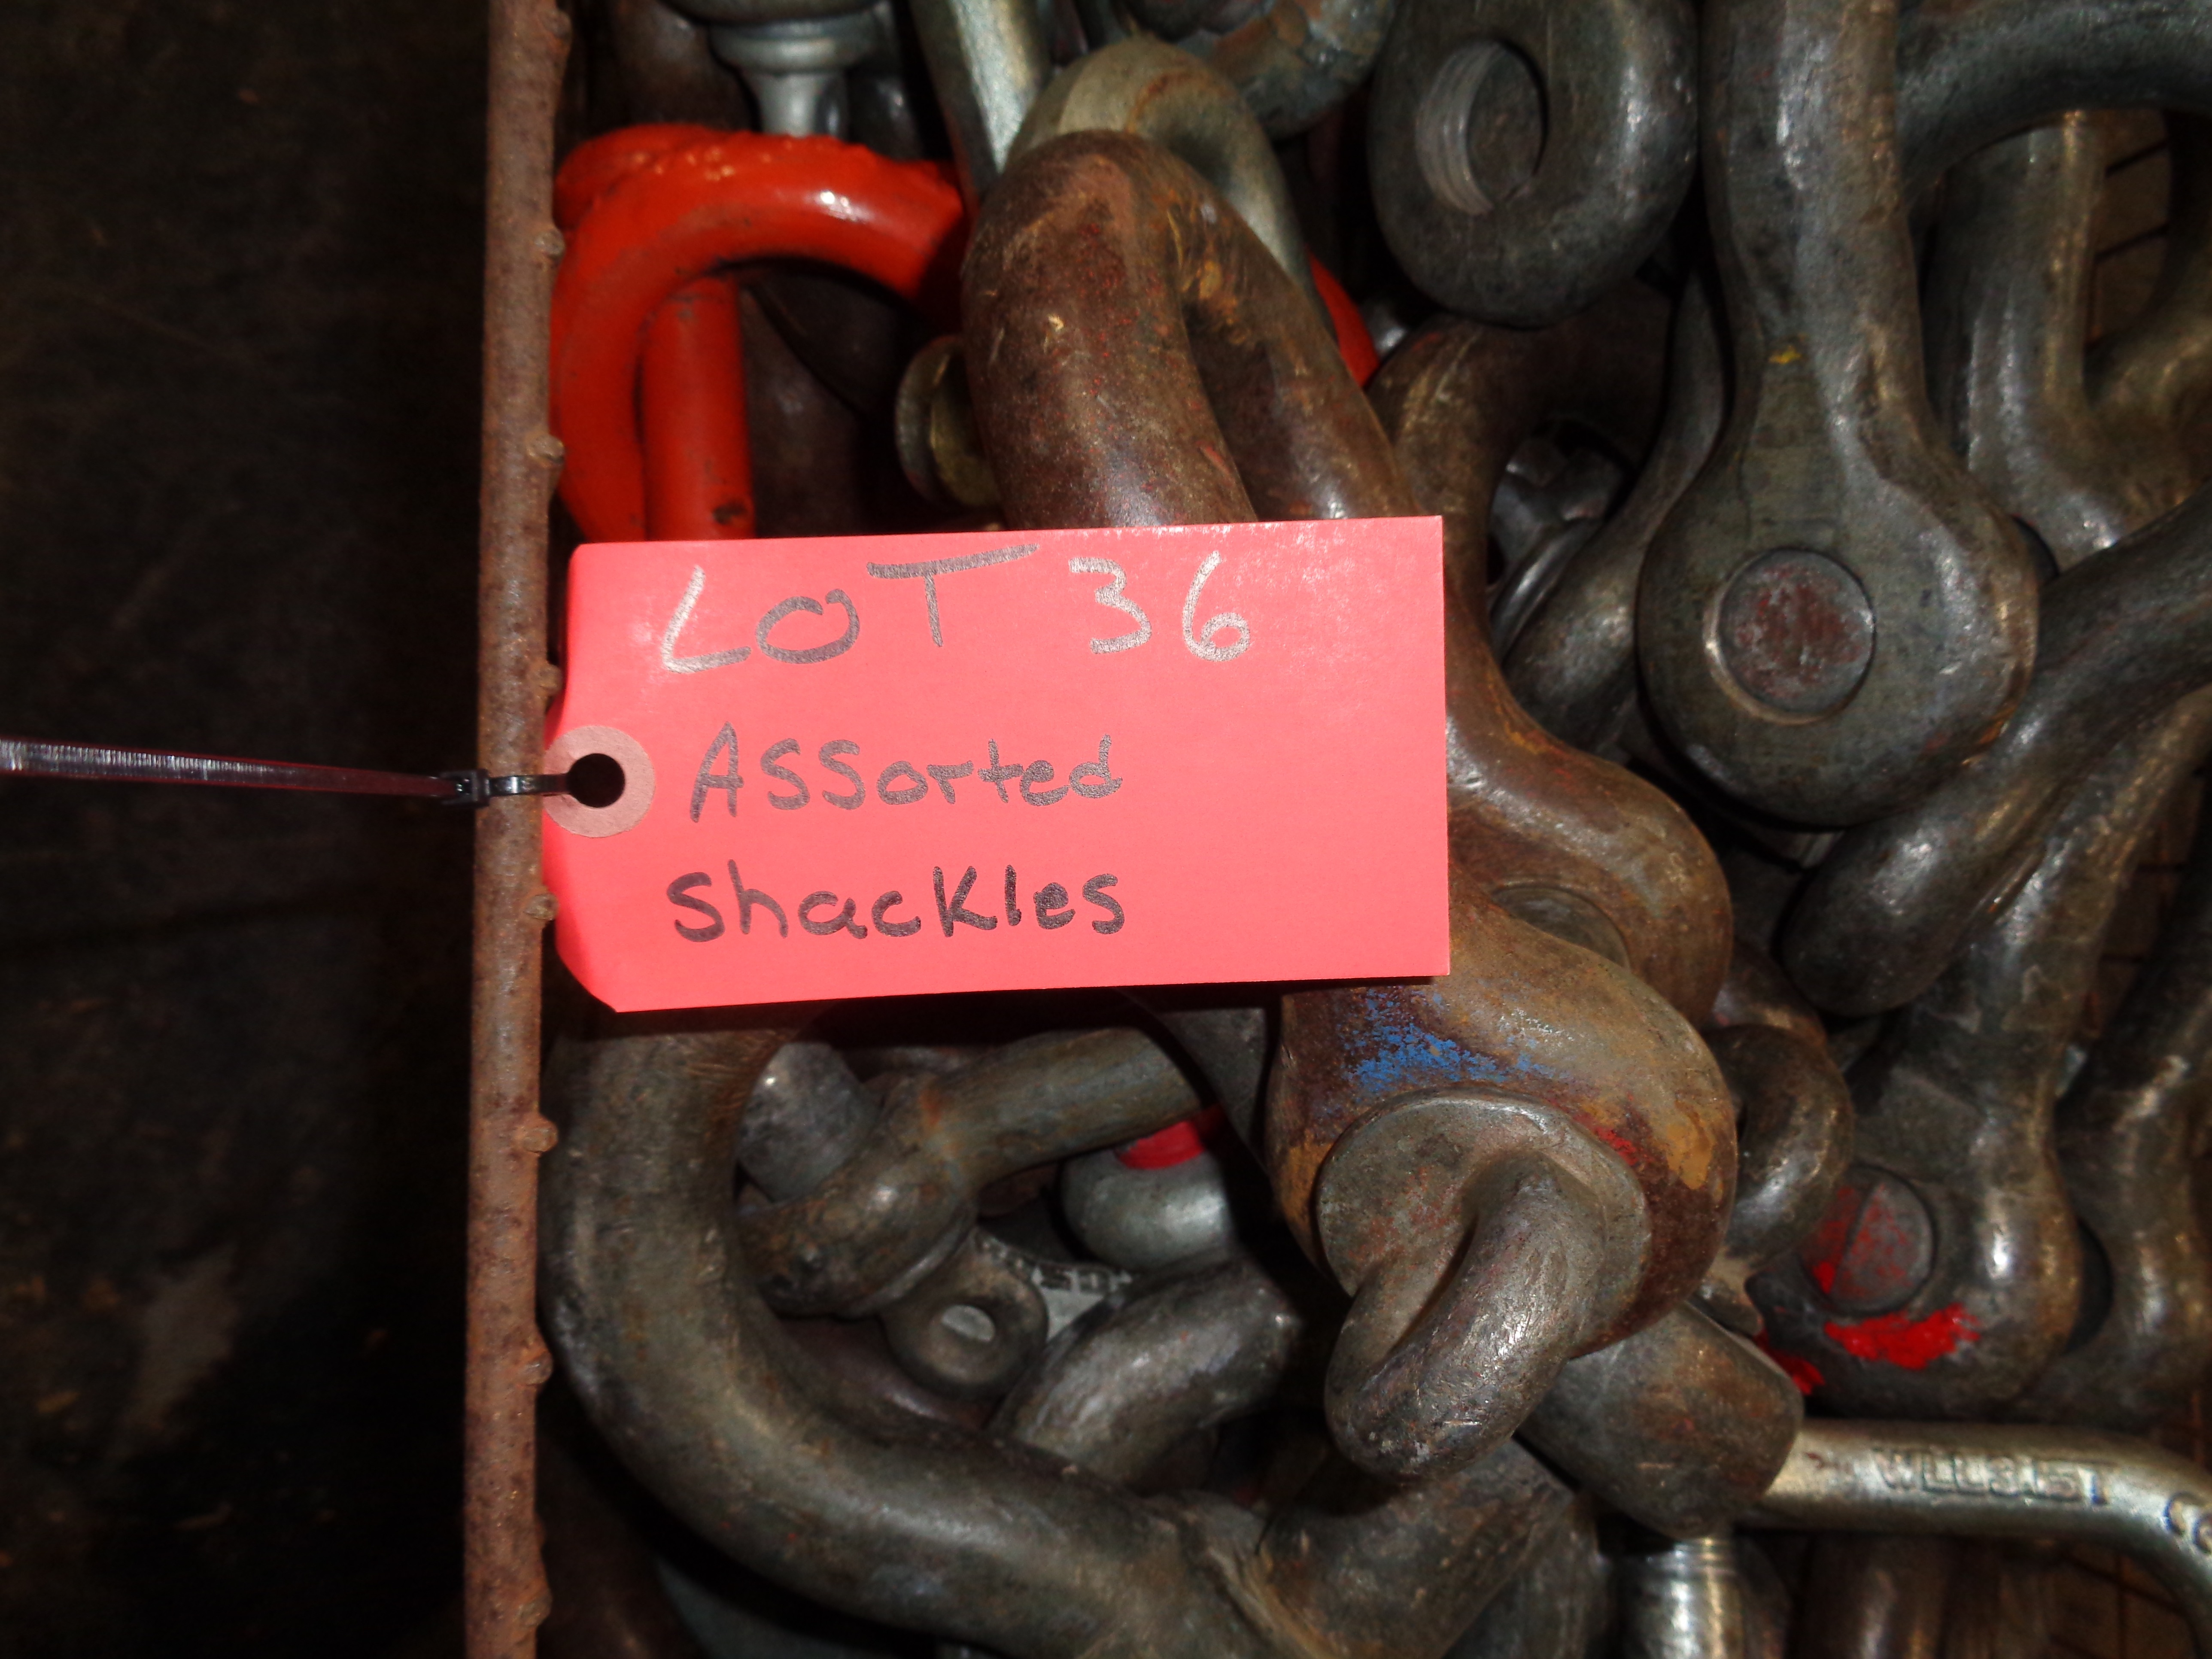 Wire Basket of Shackles Assortment - Image 3 of 3